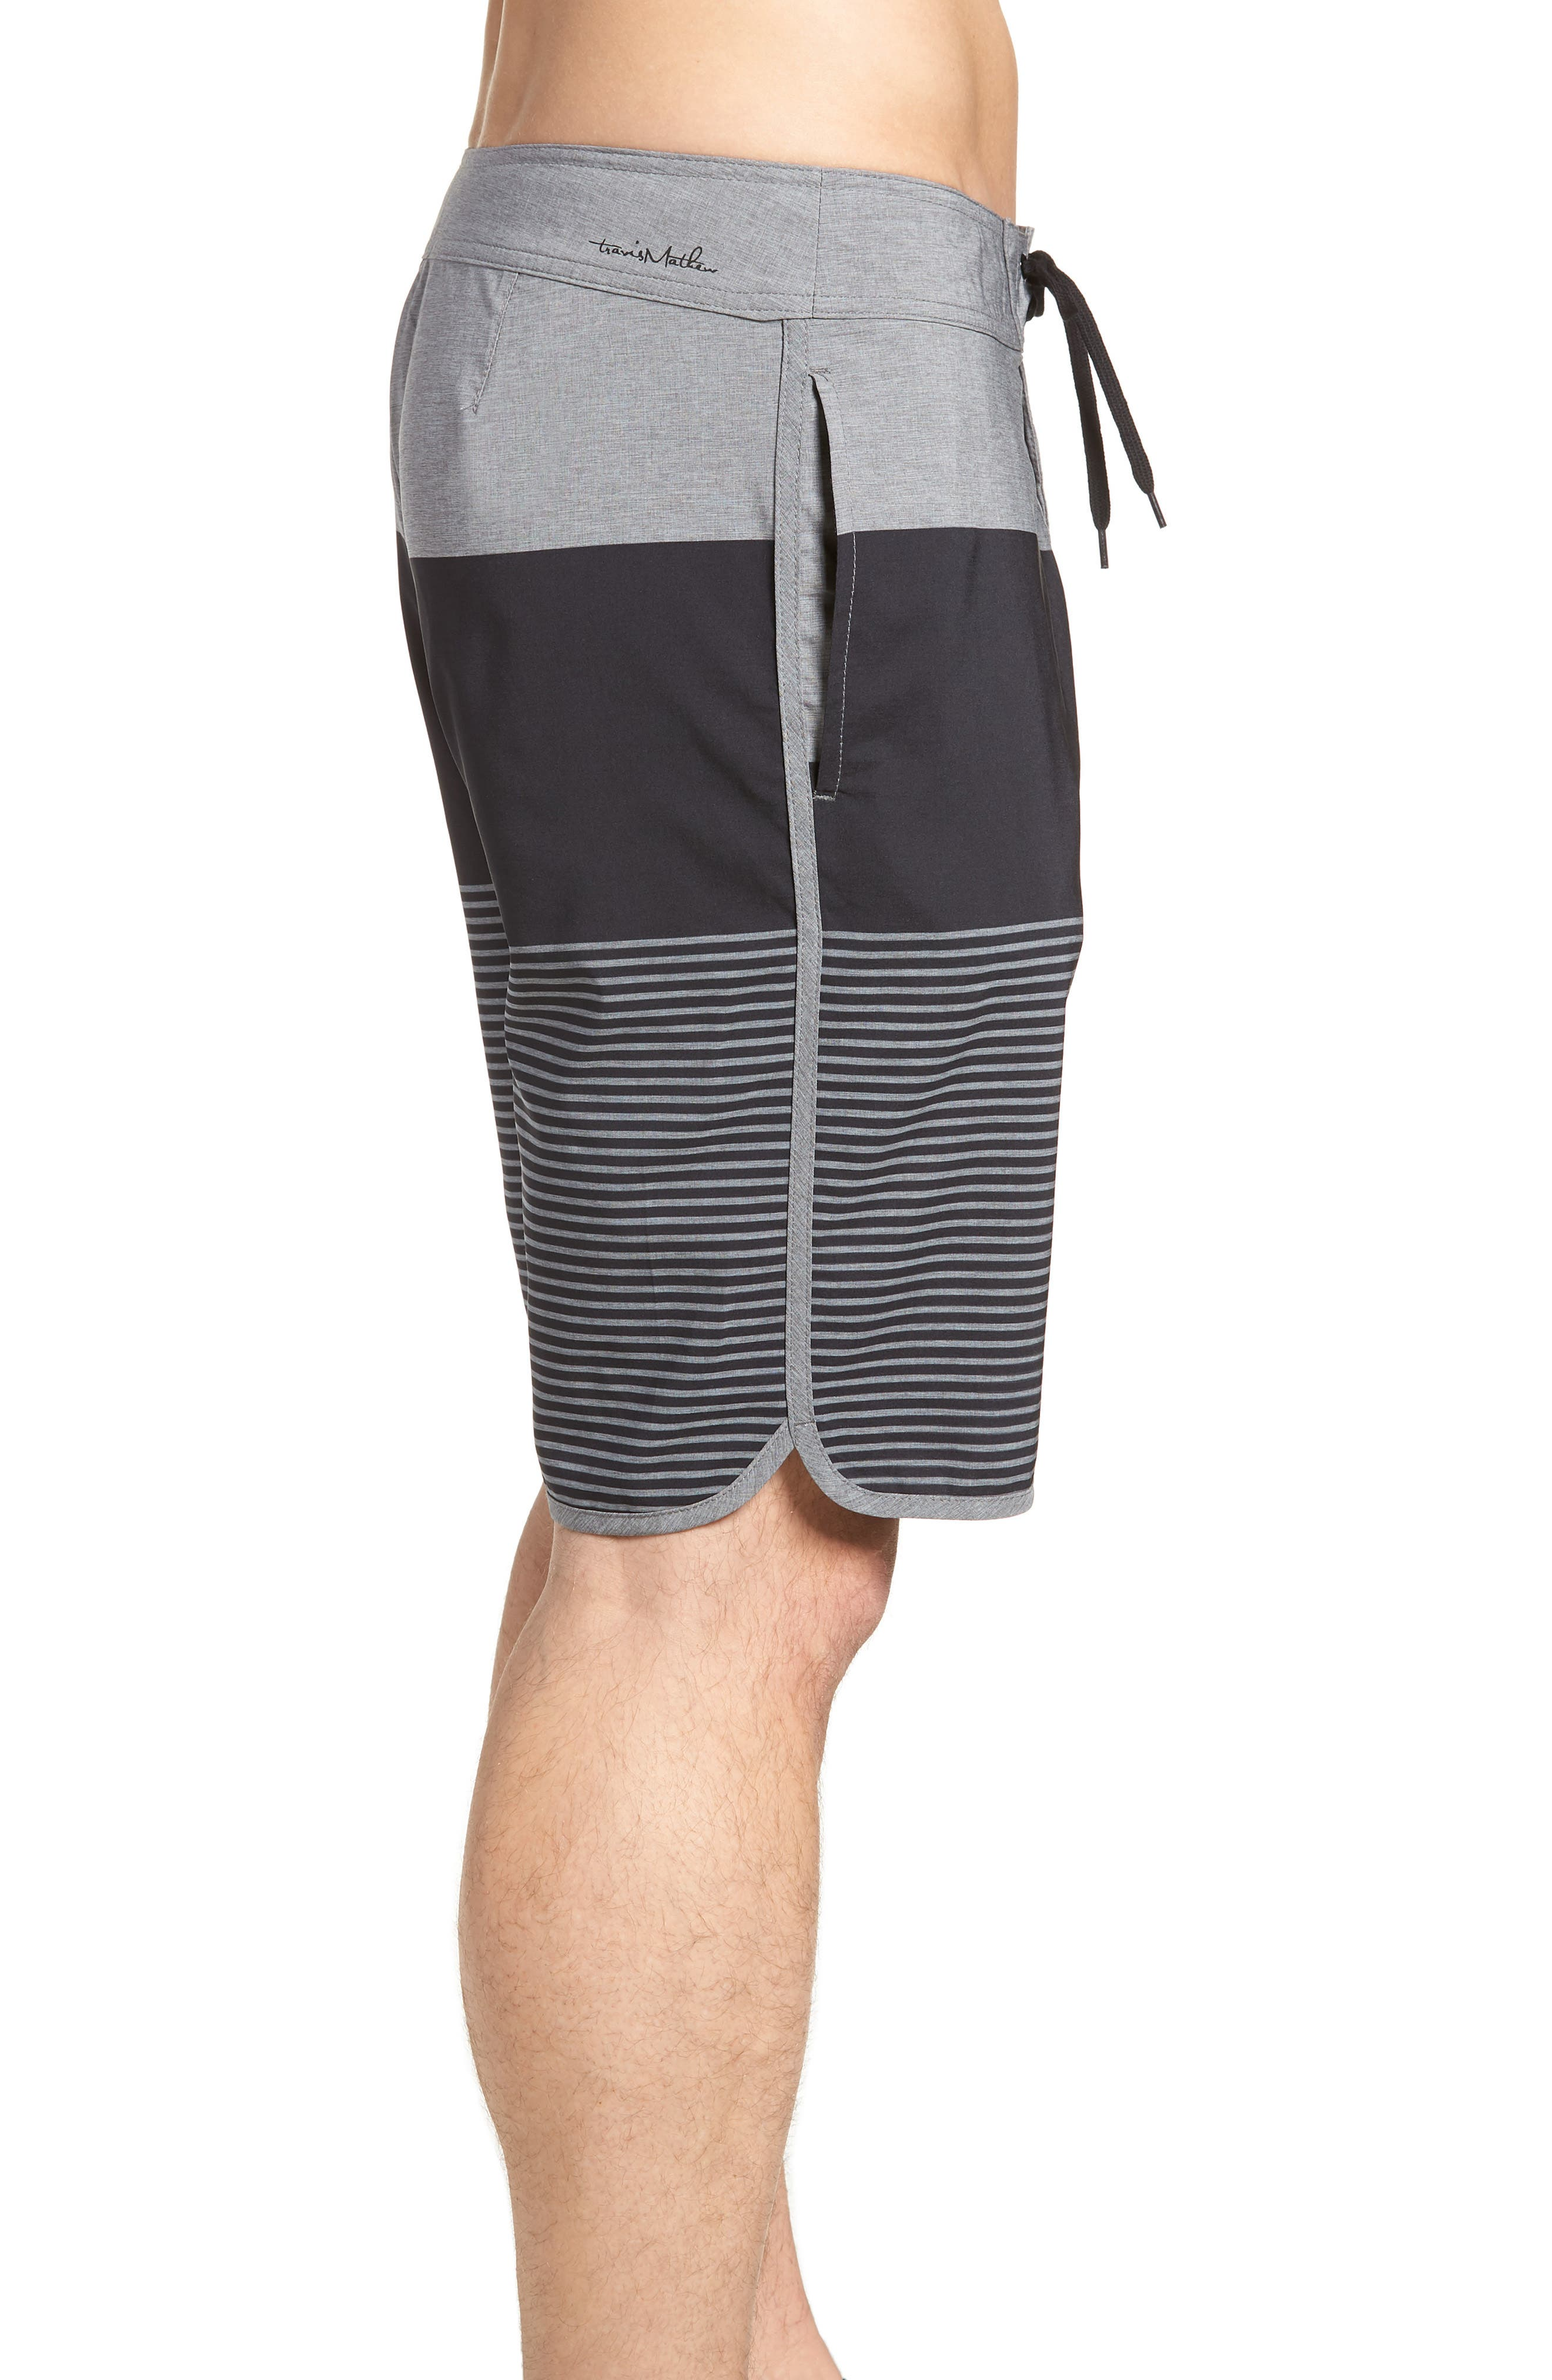 Claim It Regular Fit Board Shorts,                             Alternate thumbnail 3, color,                             001